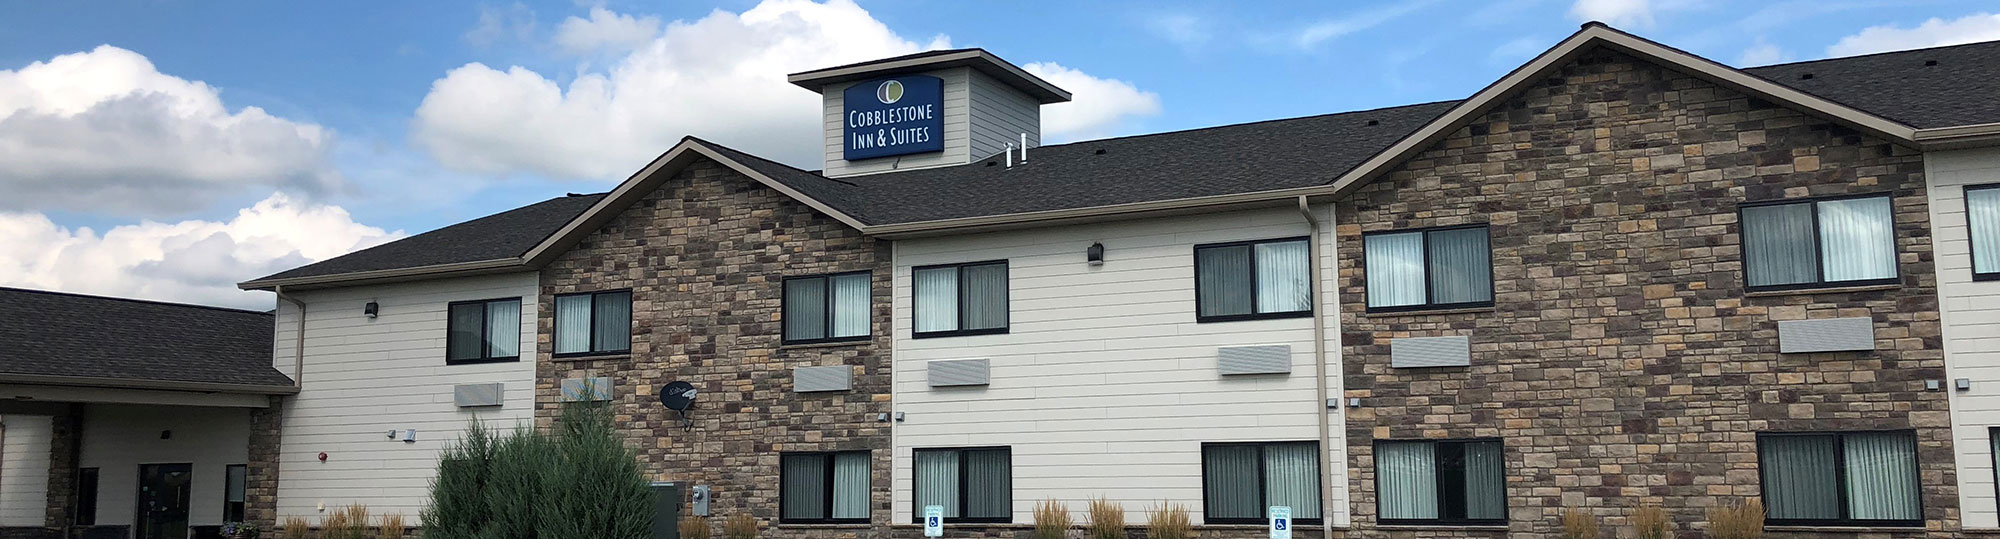 Cobblestone Inn and Suites Monticello